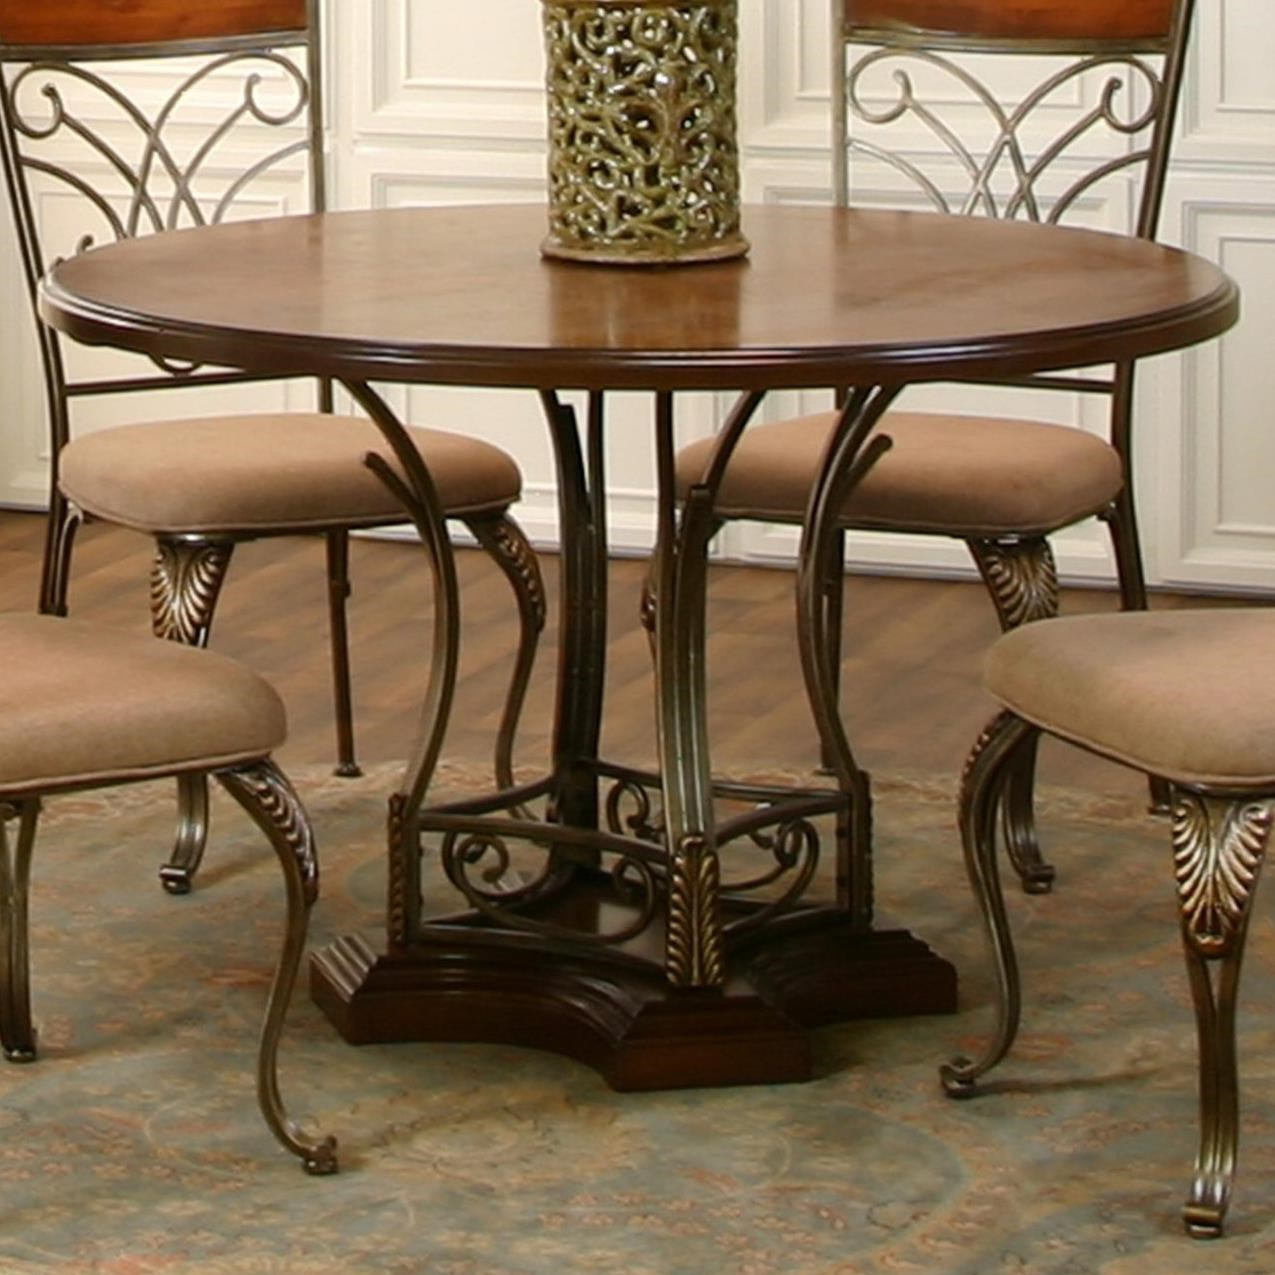 value city furniture kitchen tables farmhouse lights cramco inc harlow transitional 48 quot round metal wood table